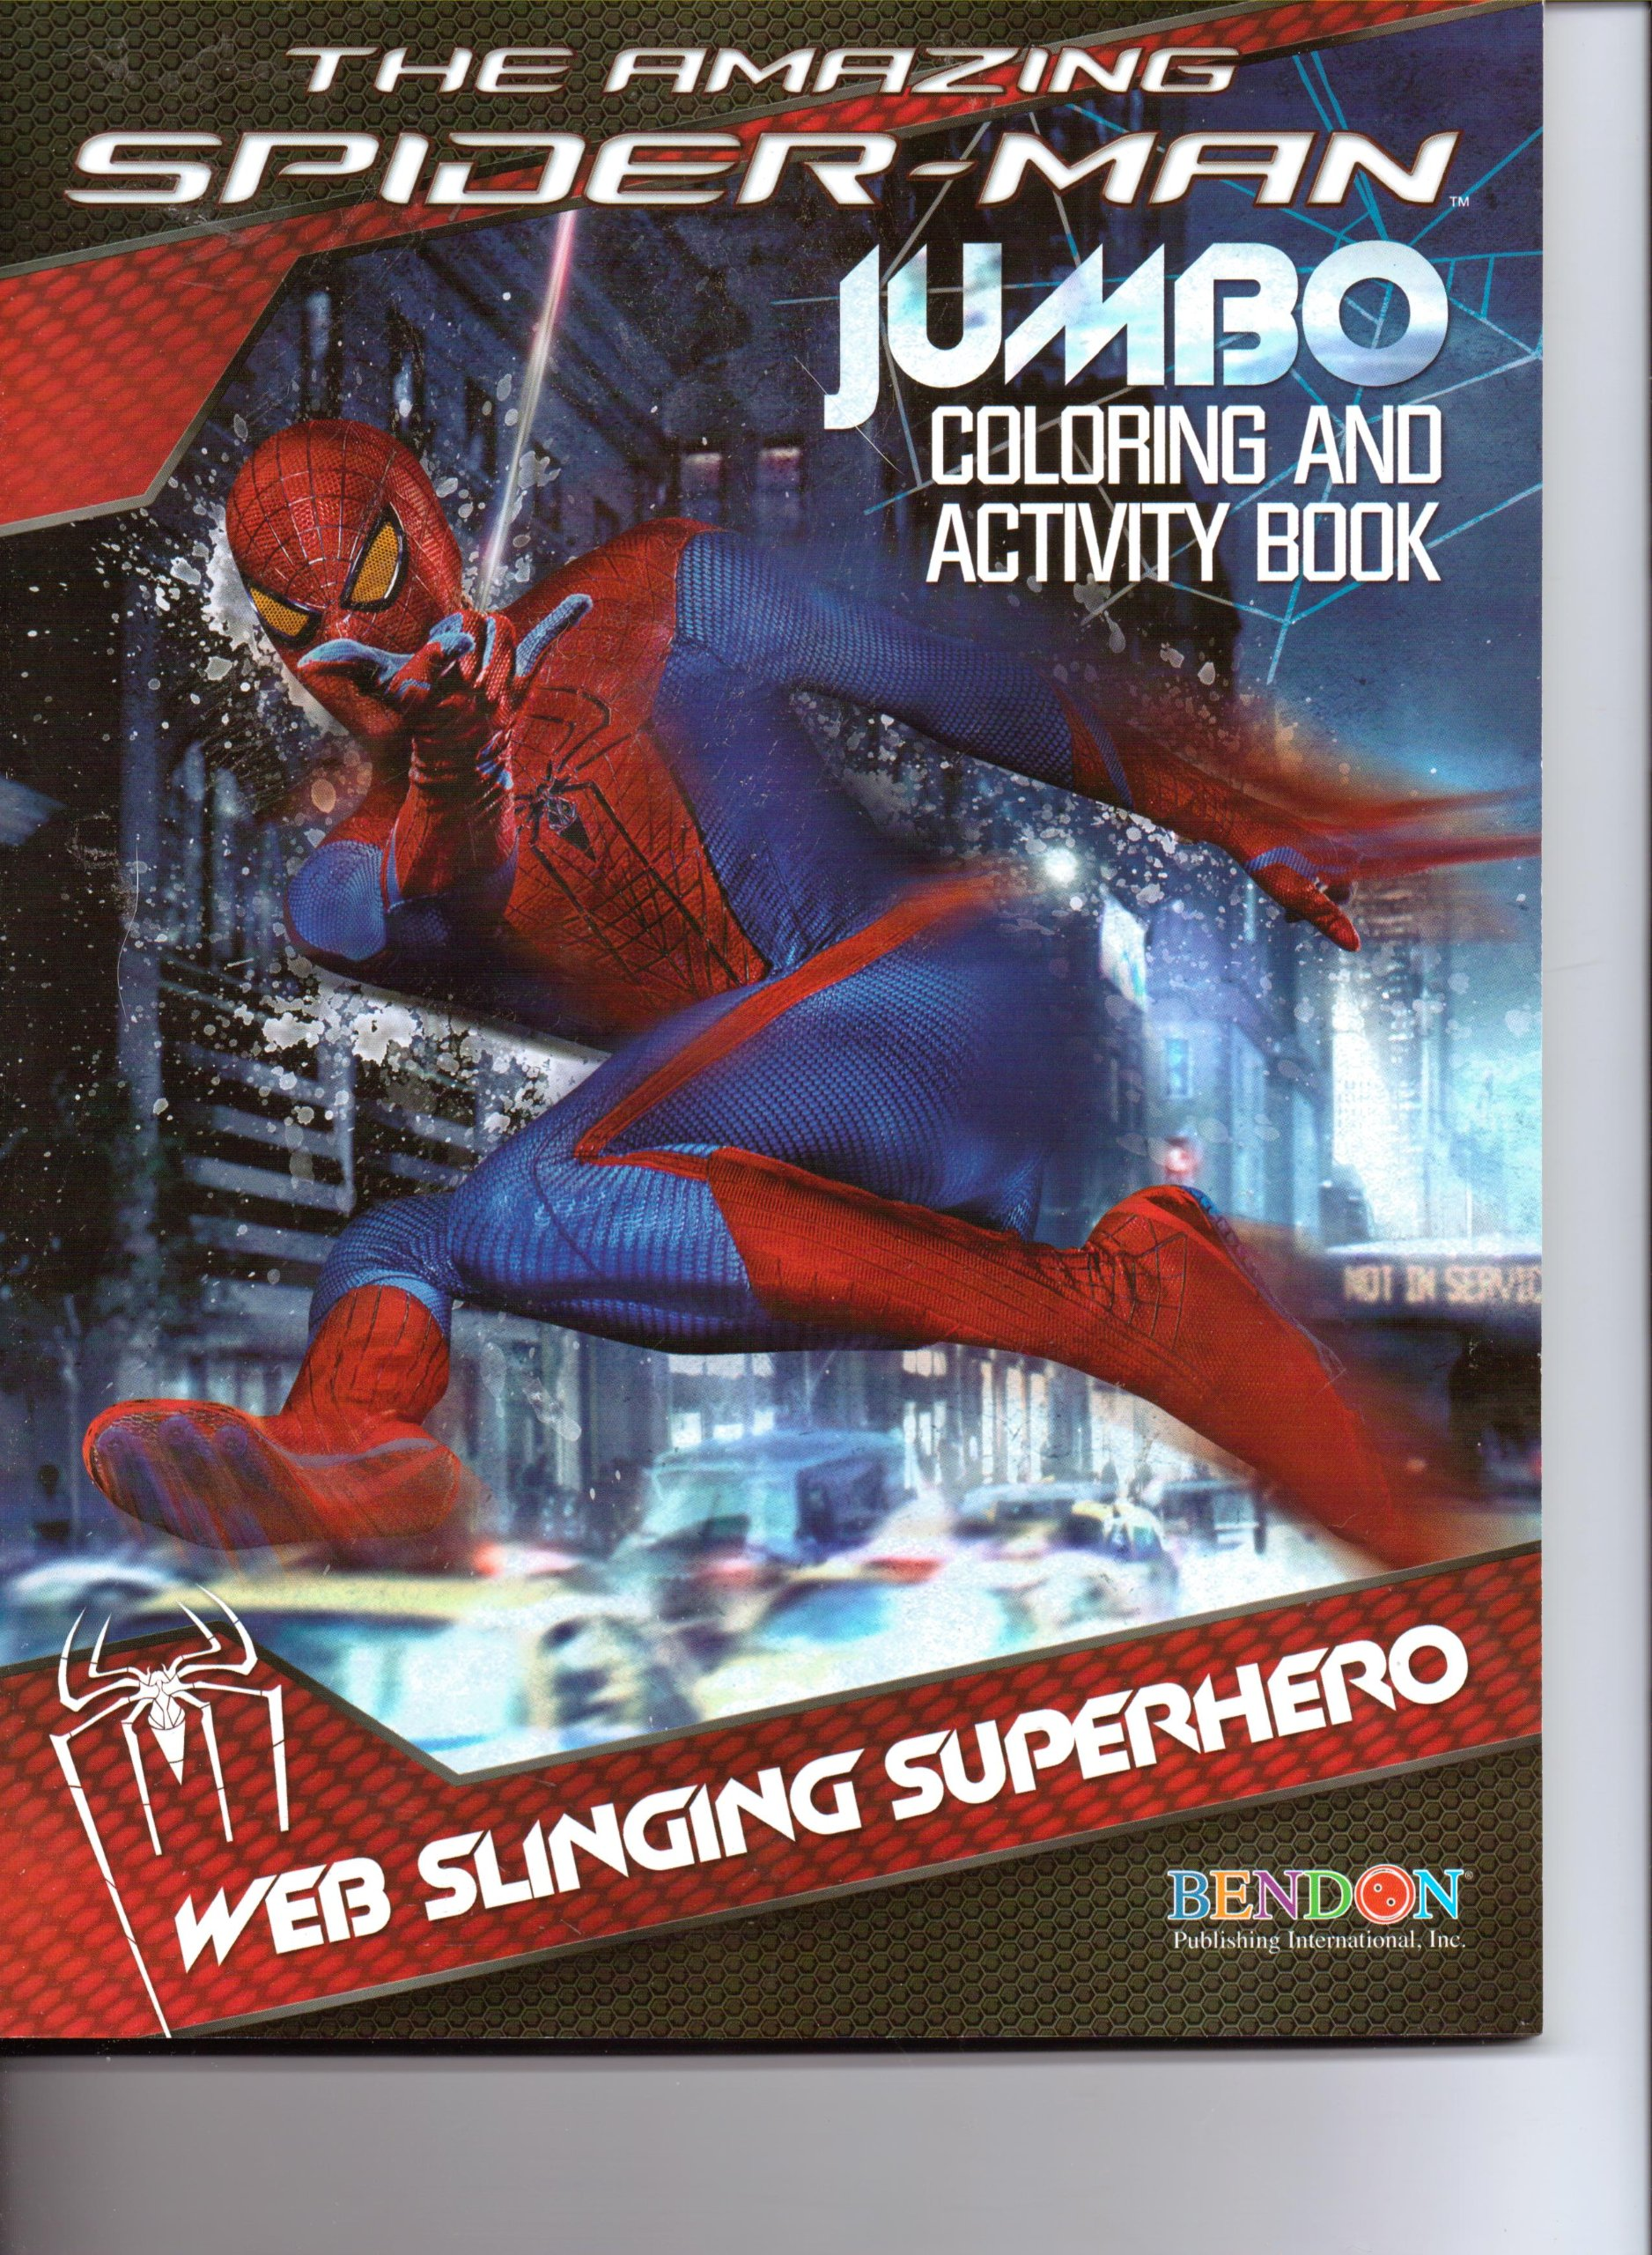 The Amazing Spider-Man Jumbo Coloring & Activity Book ~ Web